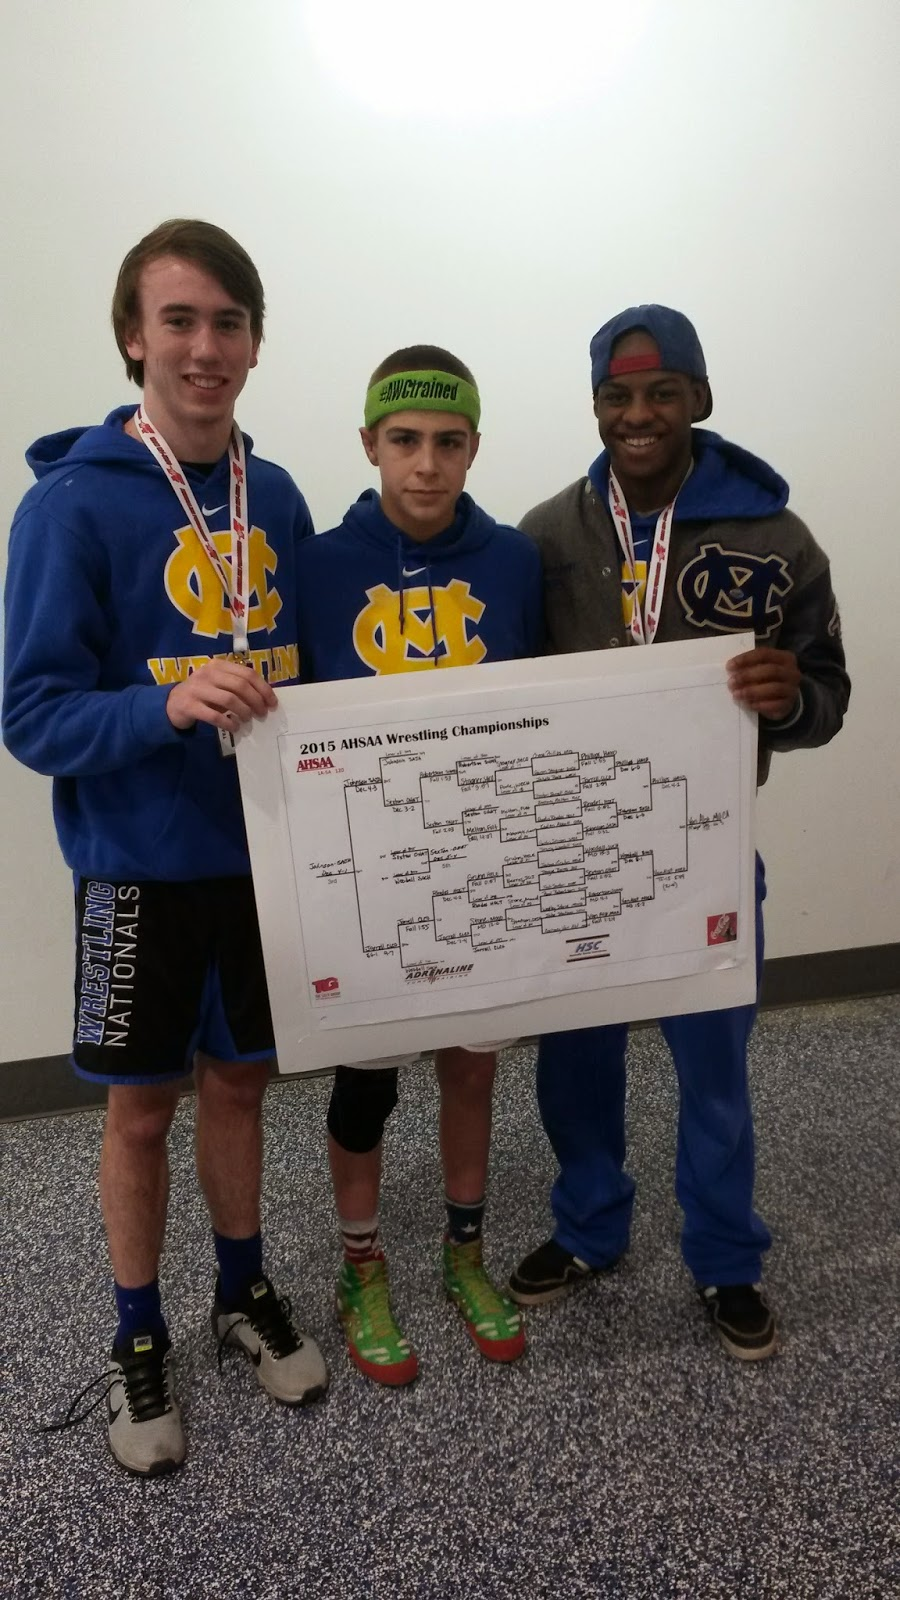 Catholic's Van Alst Claims Fourth Consecutive Wrestling State Championship 4